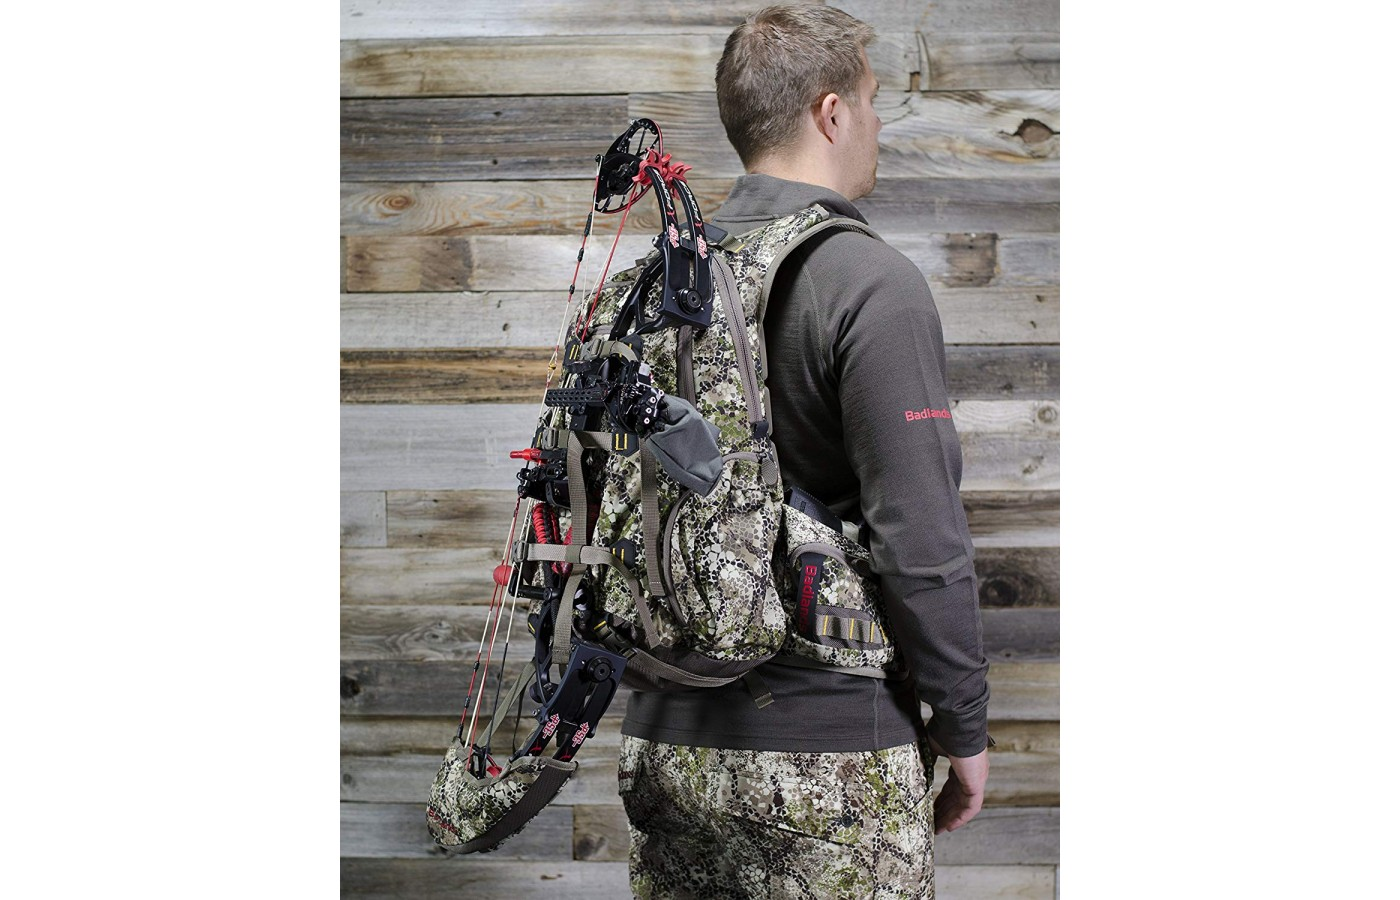 The pack has the ideal compartment for a bow and arrows, a gun, or whatever rifle is preferred.